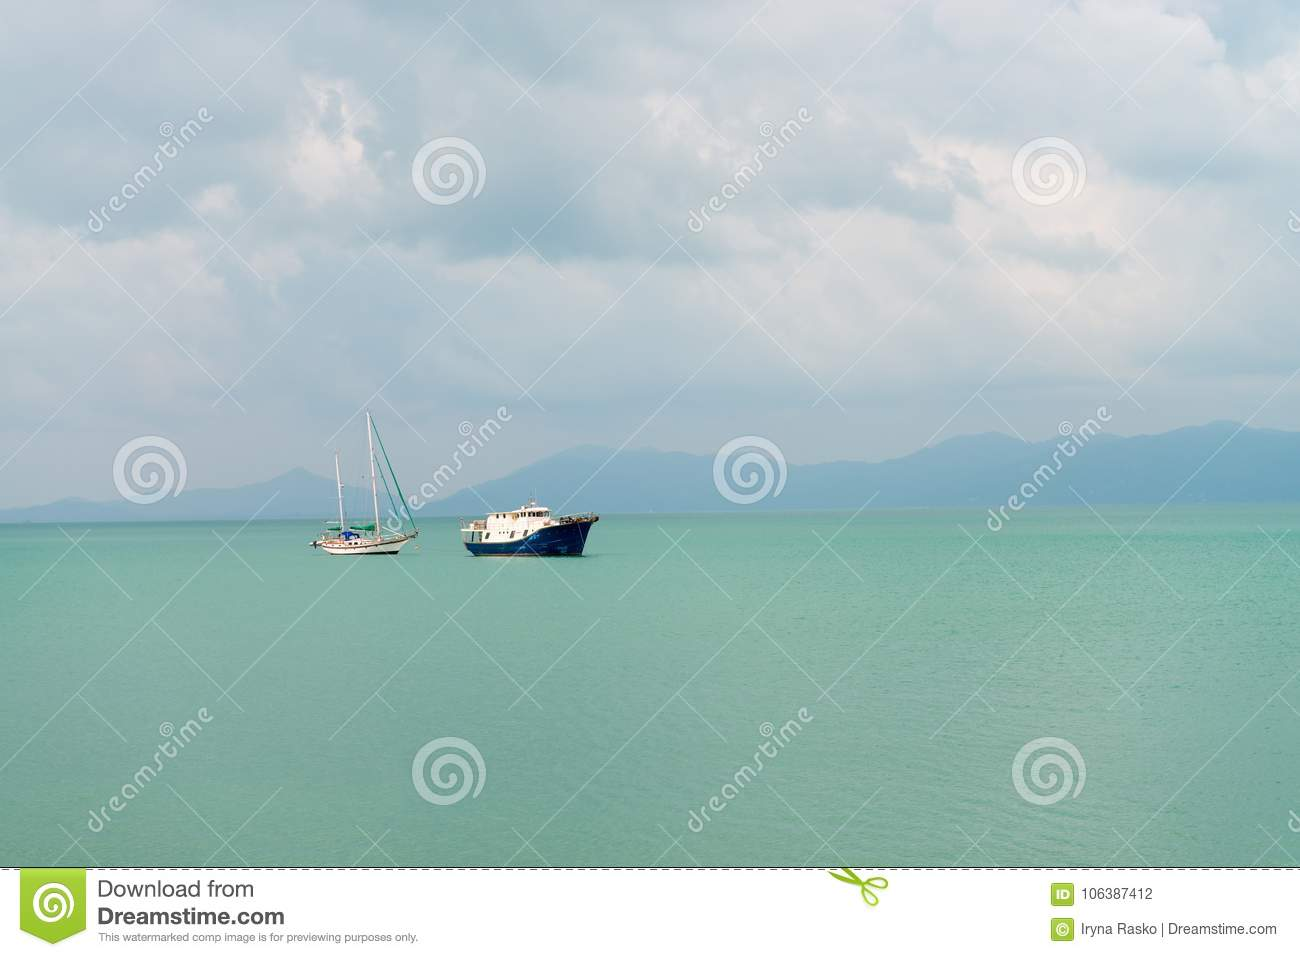 Sailing yacht and motor boat in the sea